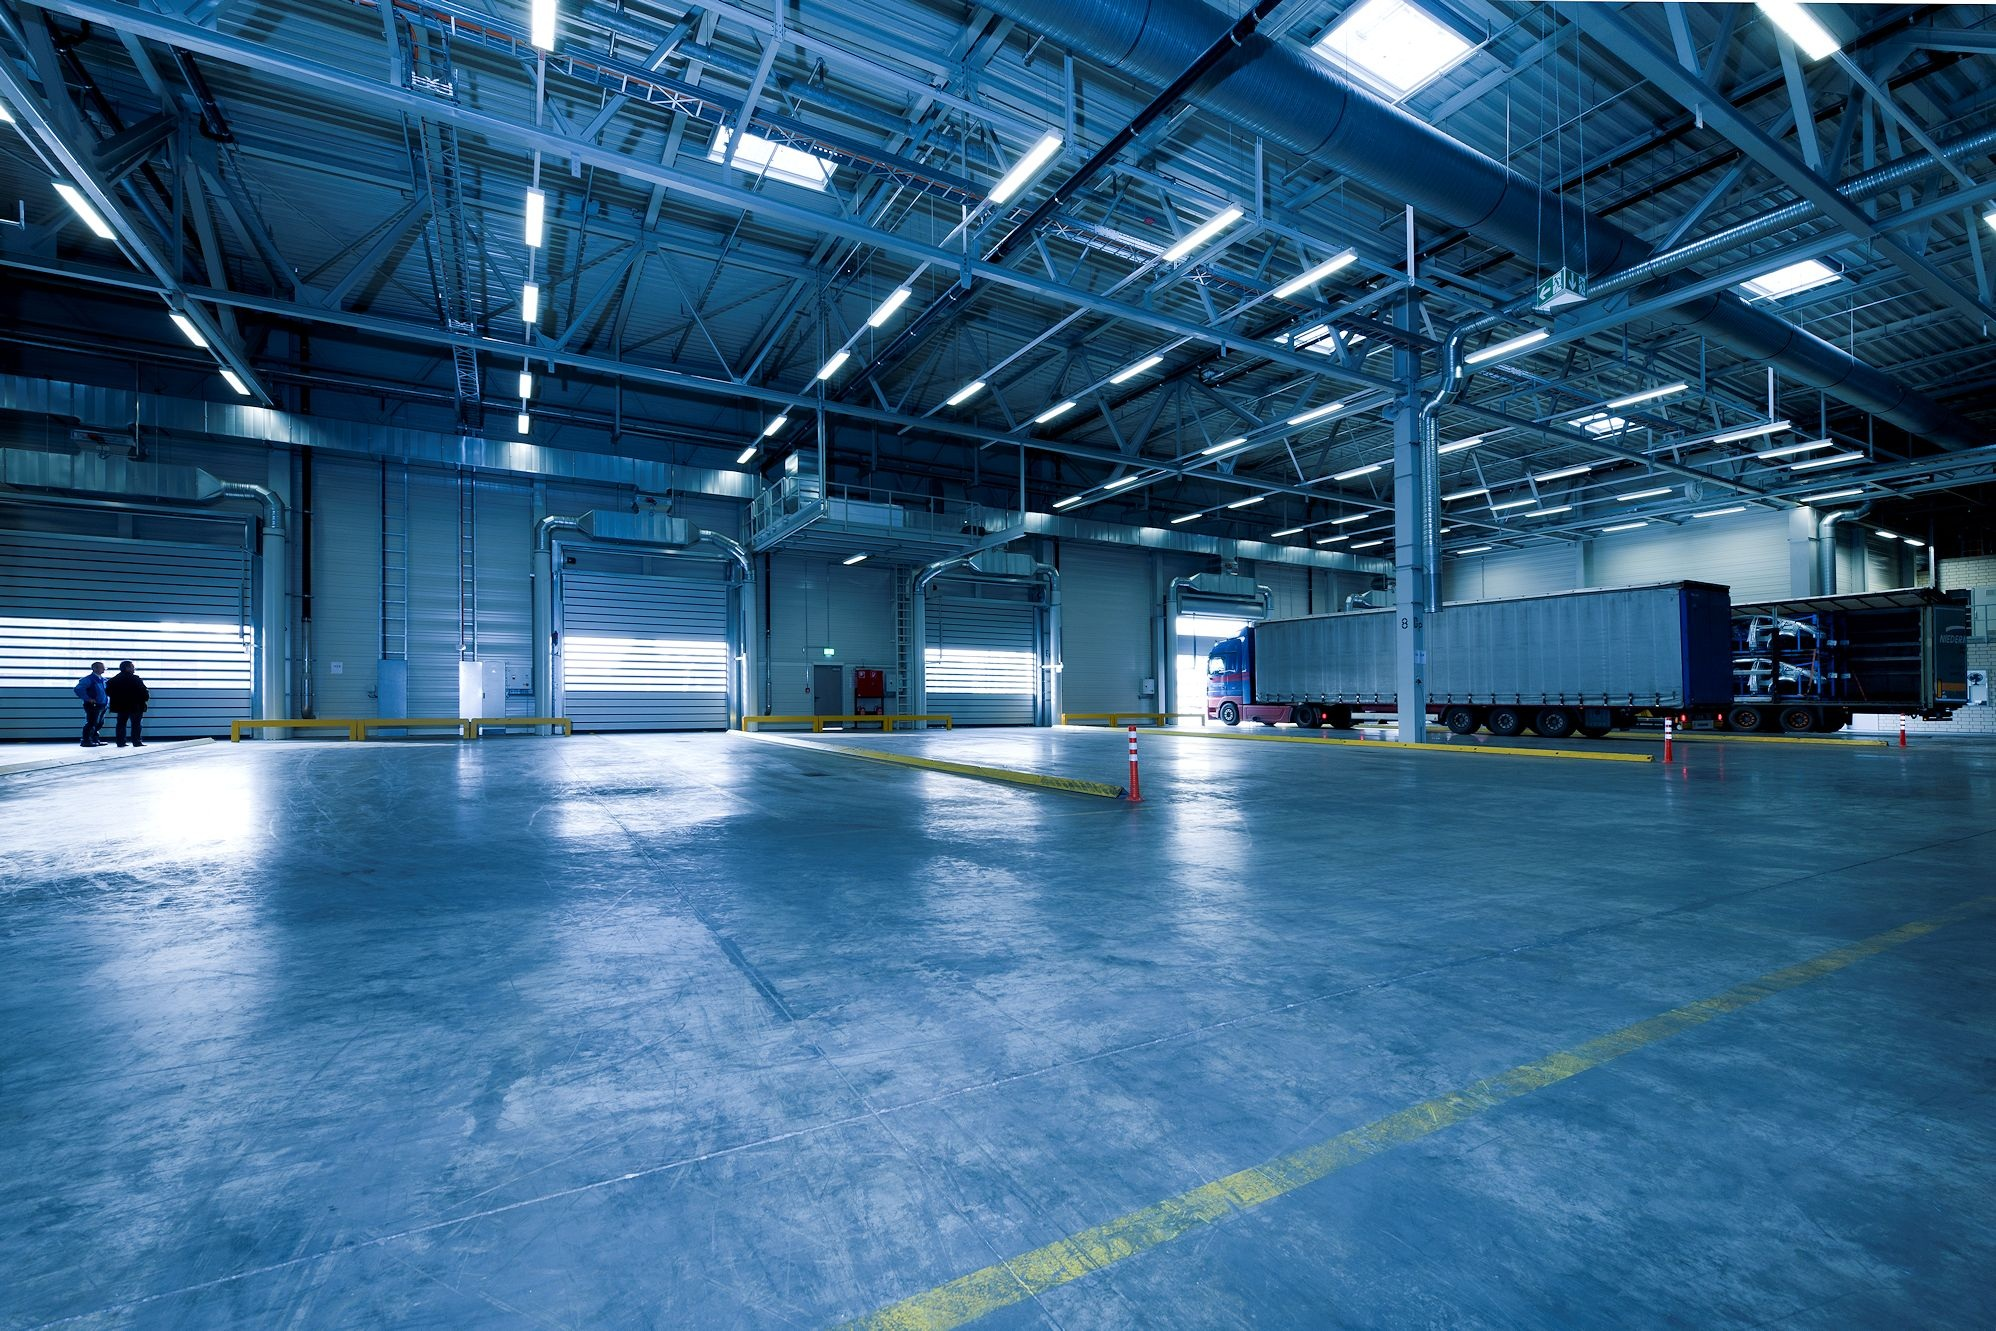 industrial-hall-1630740